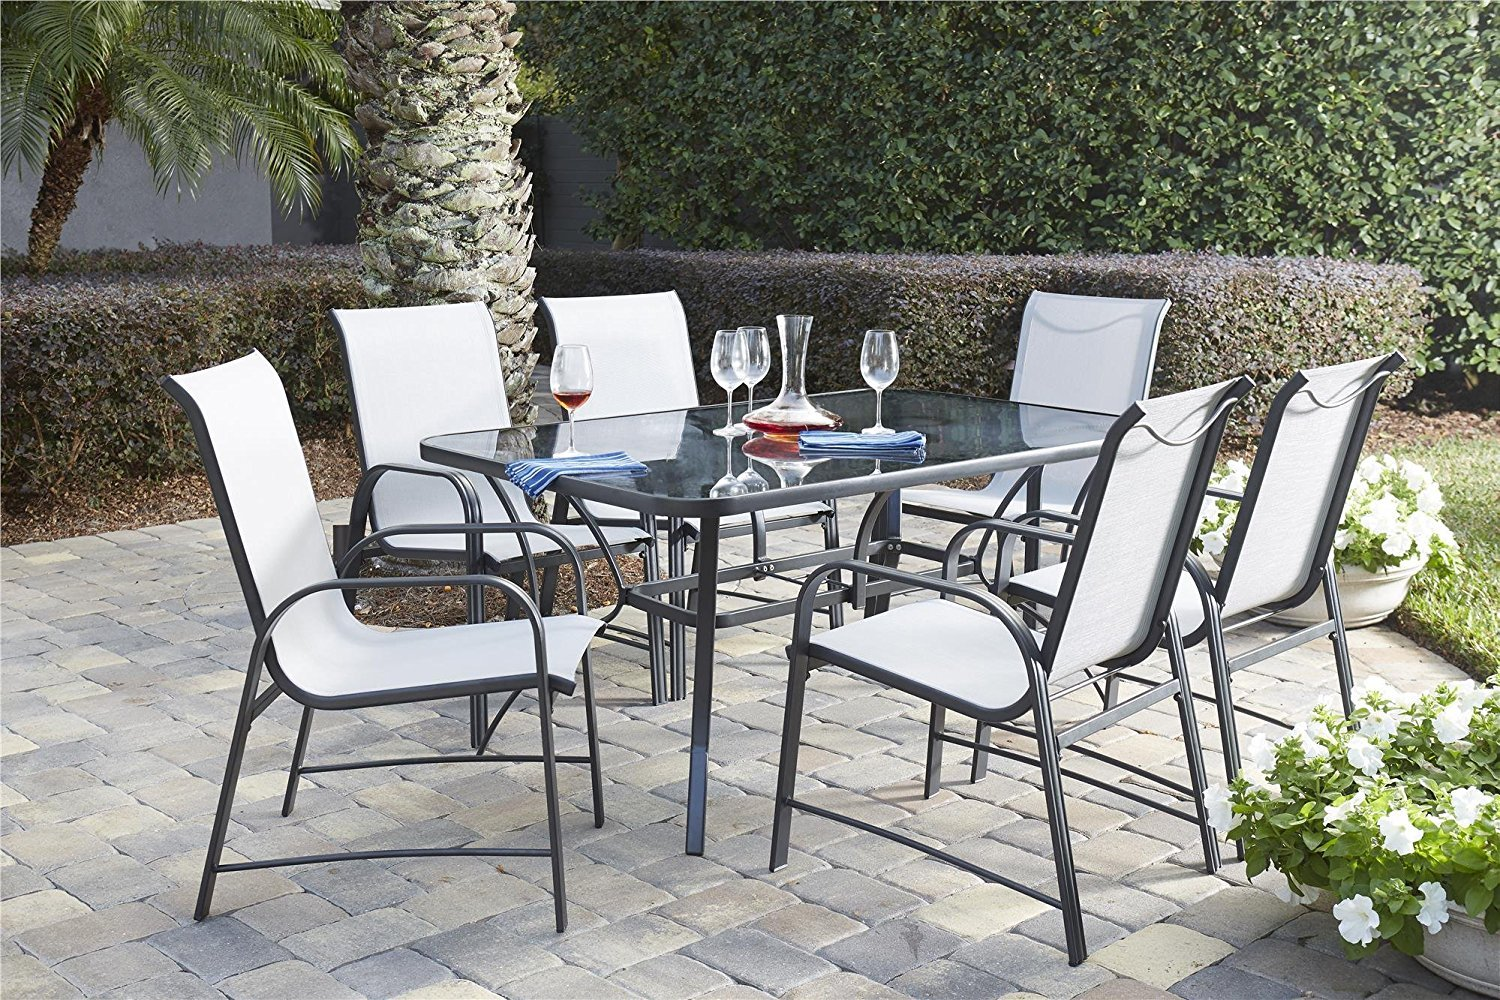 COSCO 88647GLGE Outdoor Living 7 Piece Paloma Steel Patio Dining Set, Light/Dark Gray by Cosco Outdoor Living (Image #15)